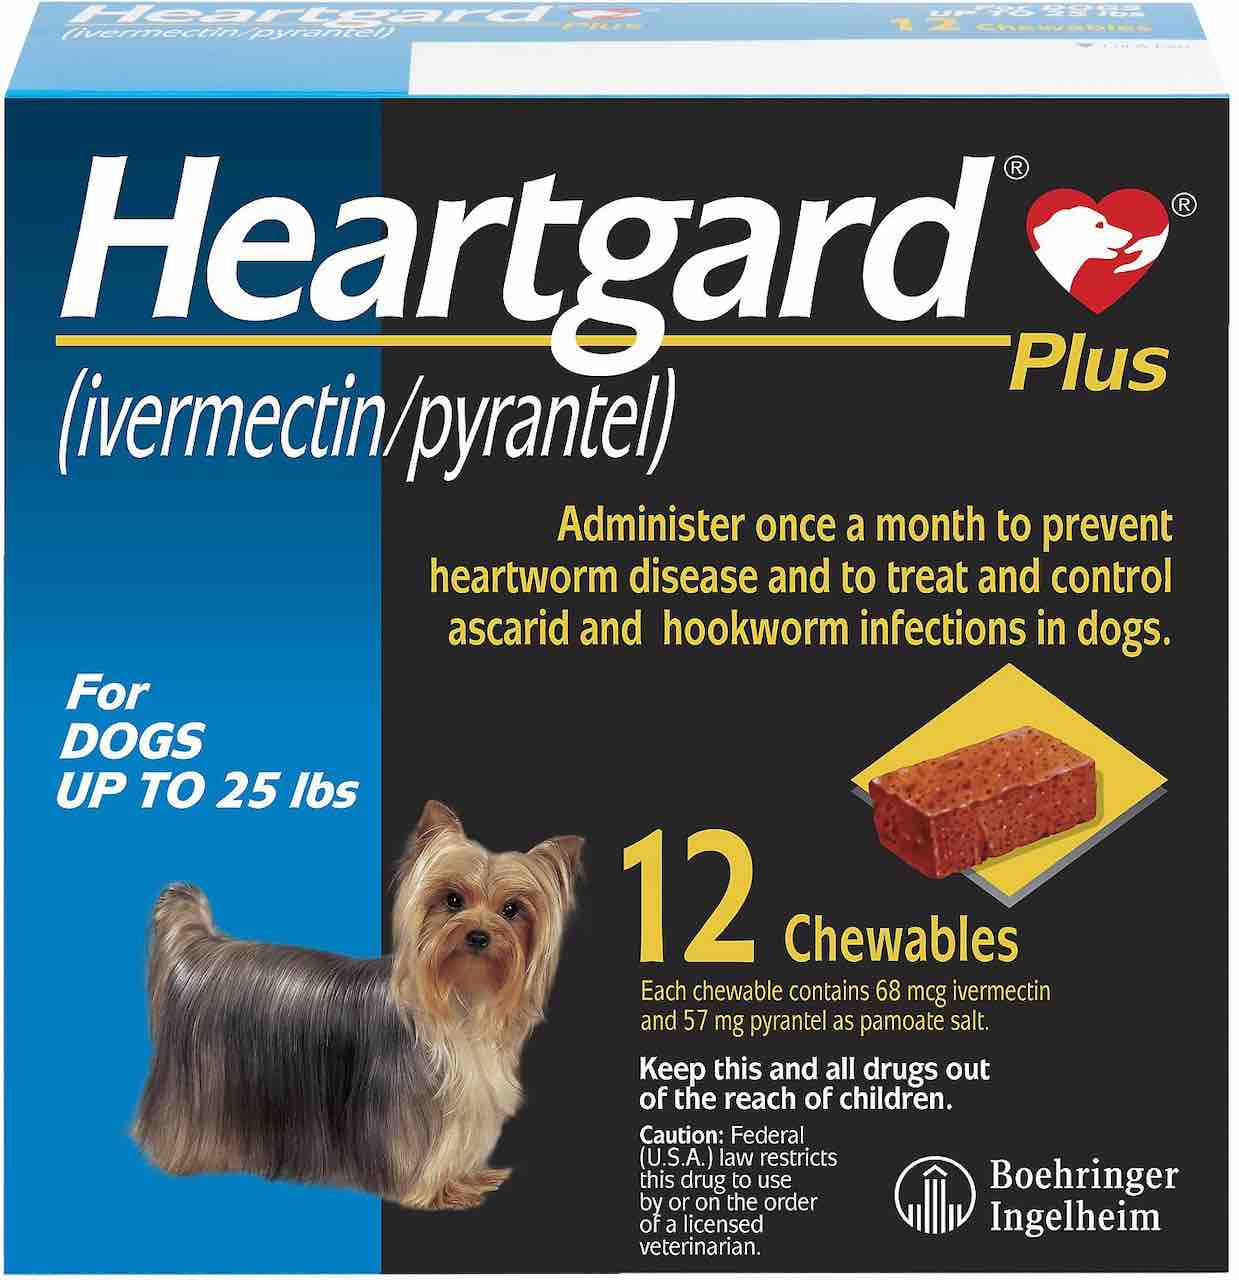 Heartgard Plus Chewables 12 doses for dogs up to 25 lbs (Blue) 1